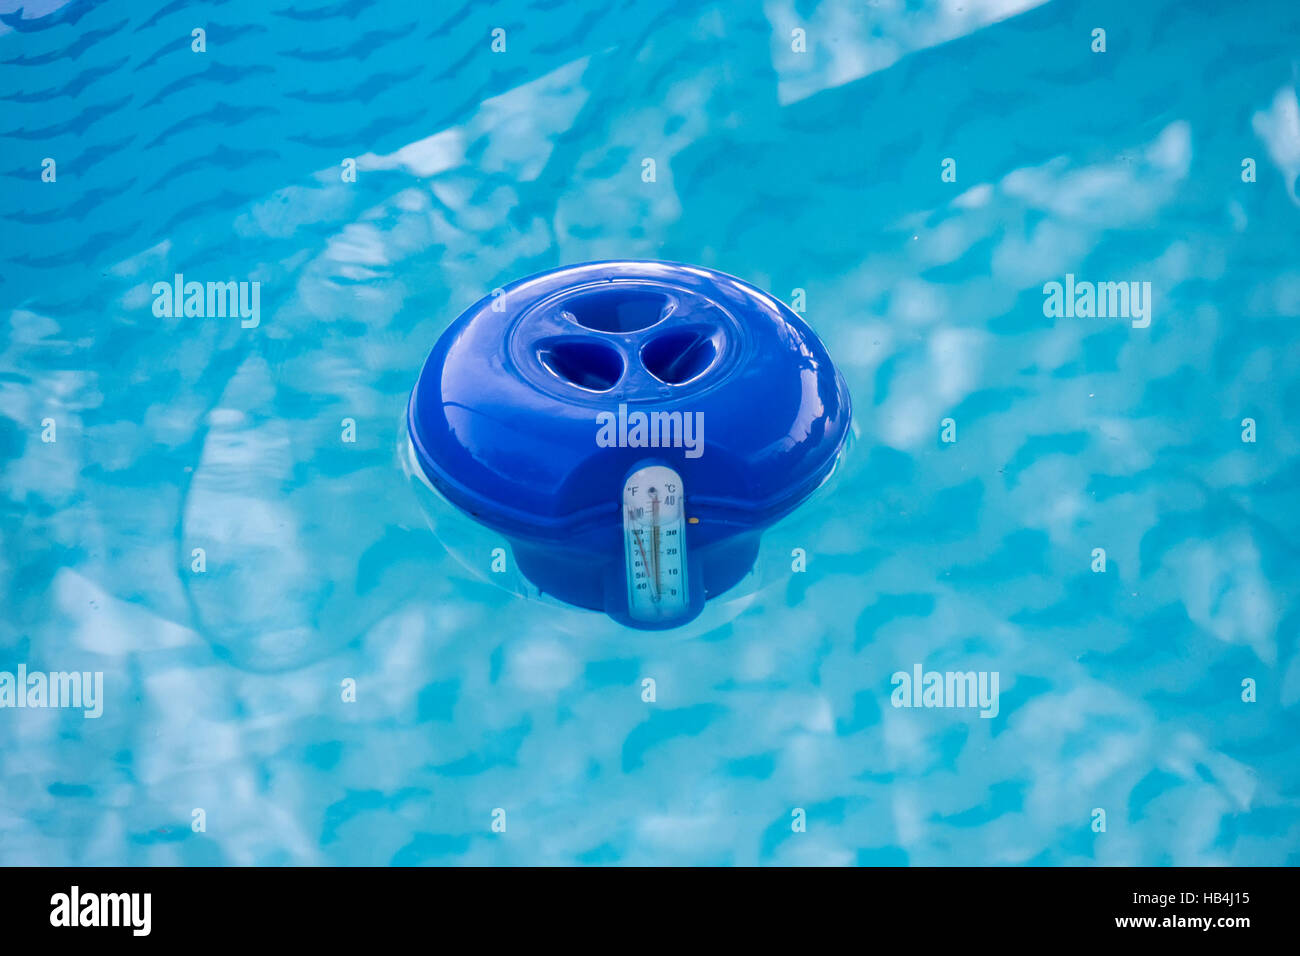 Blue pool chlorine dispenser in the water Stock Photo